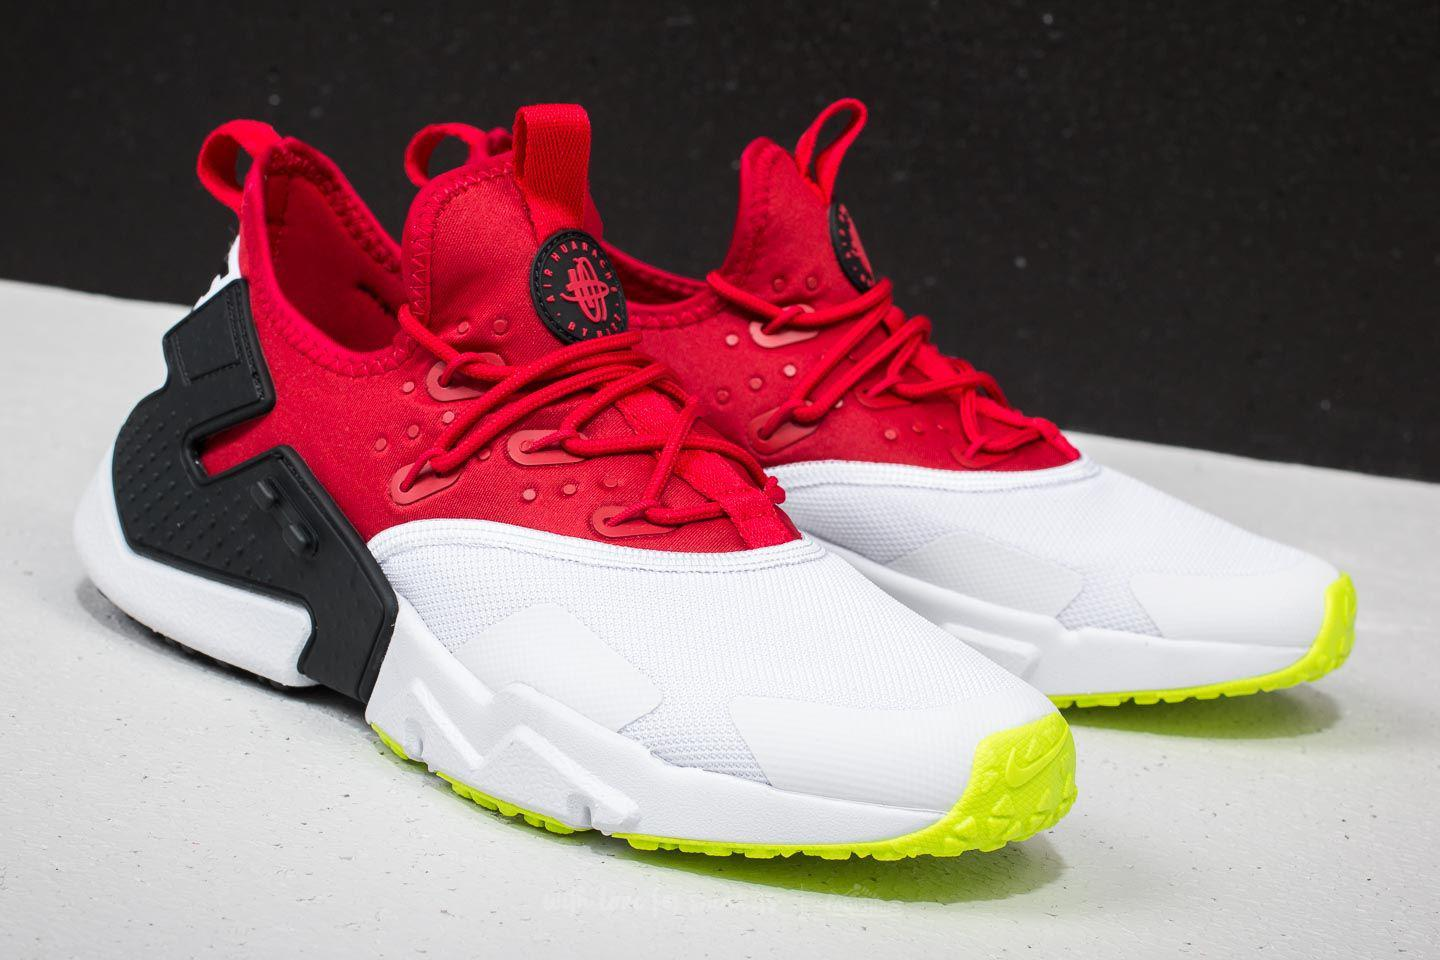 4d667c7007dd7 ... sweden lyst nike air huarache drift gym red white black volt in red for  men 3212f